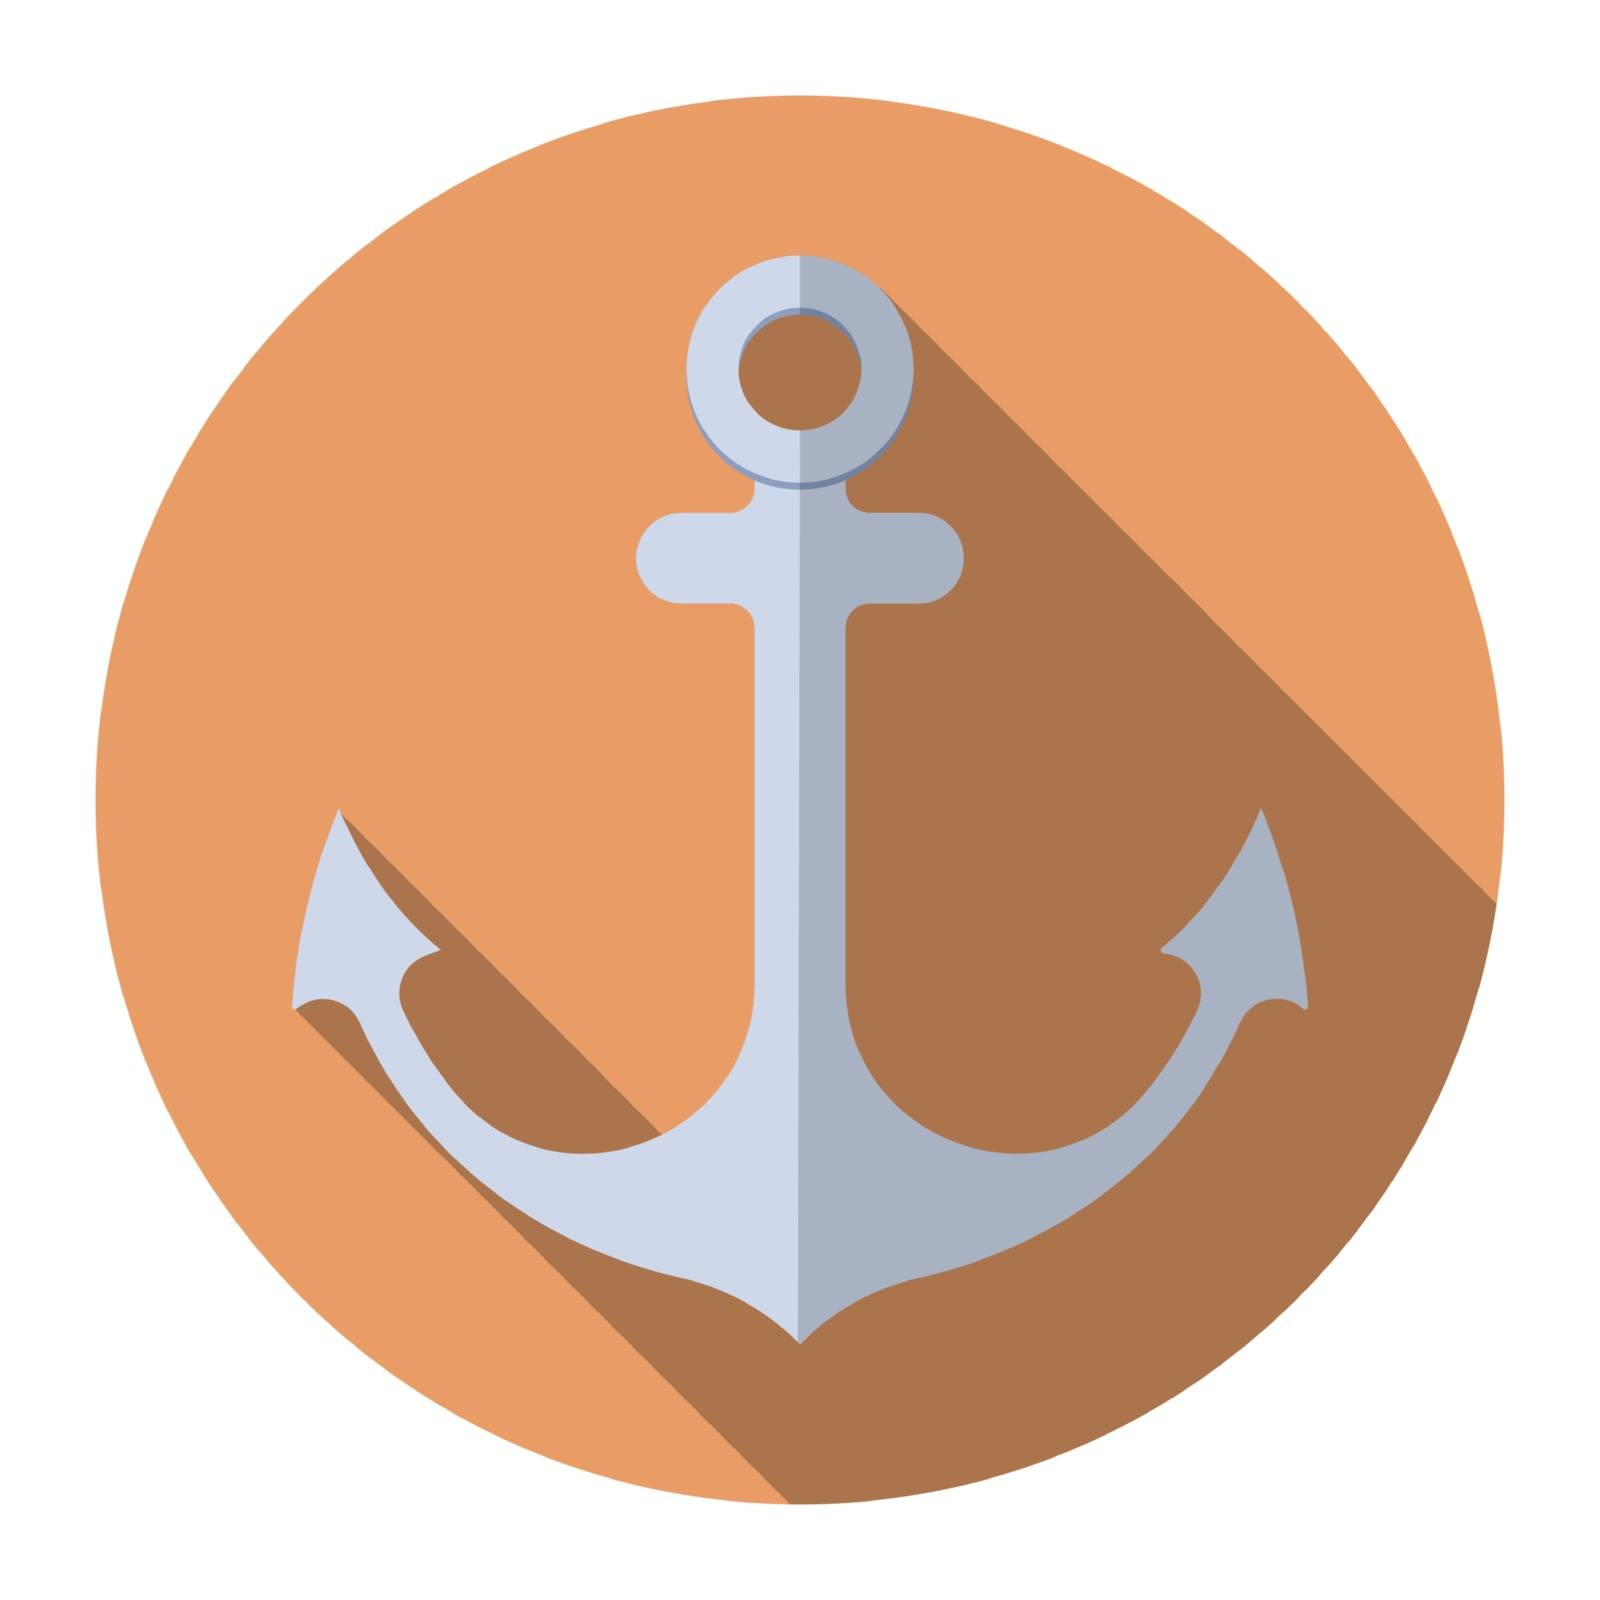 Flat design modern vector illustration of anchor icon with long shadow, isolated